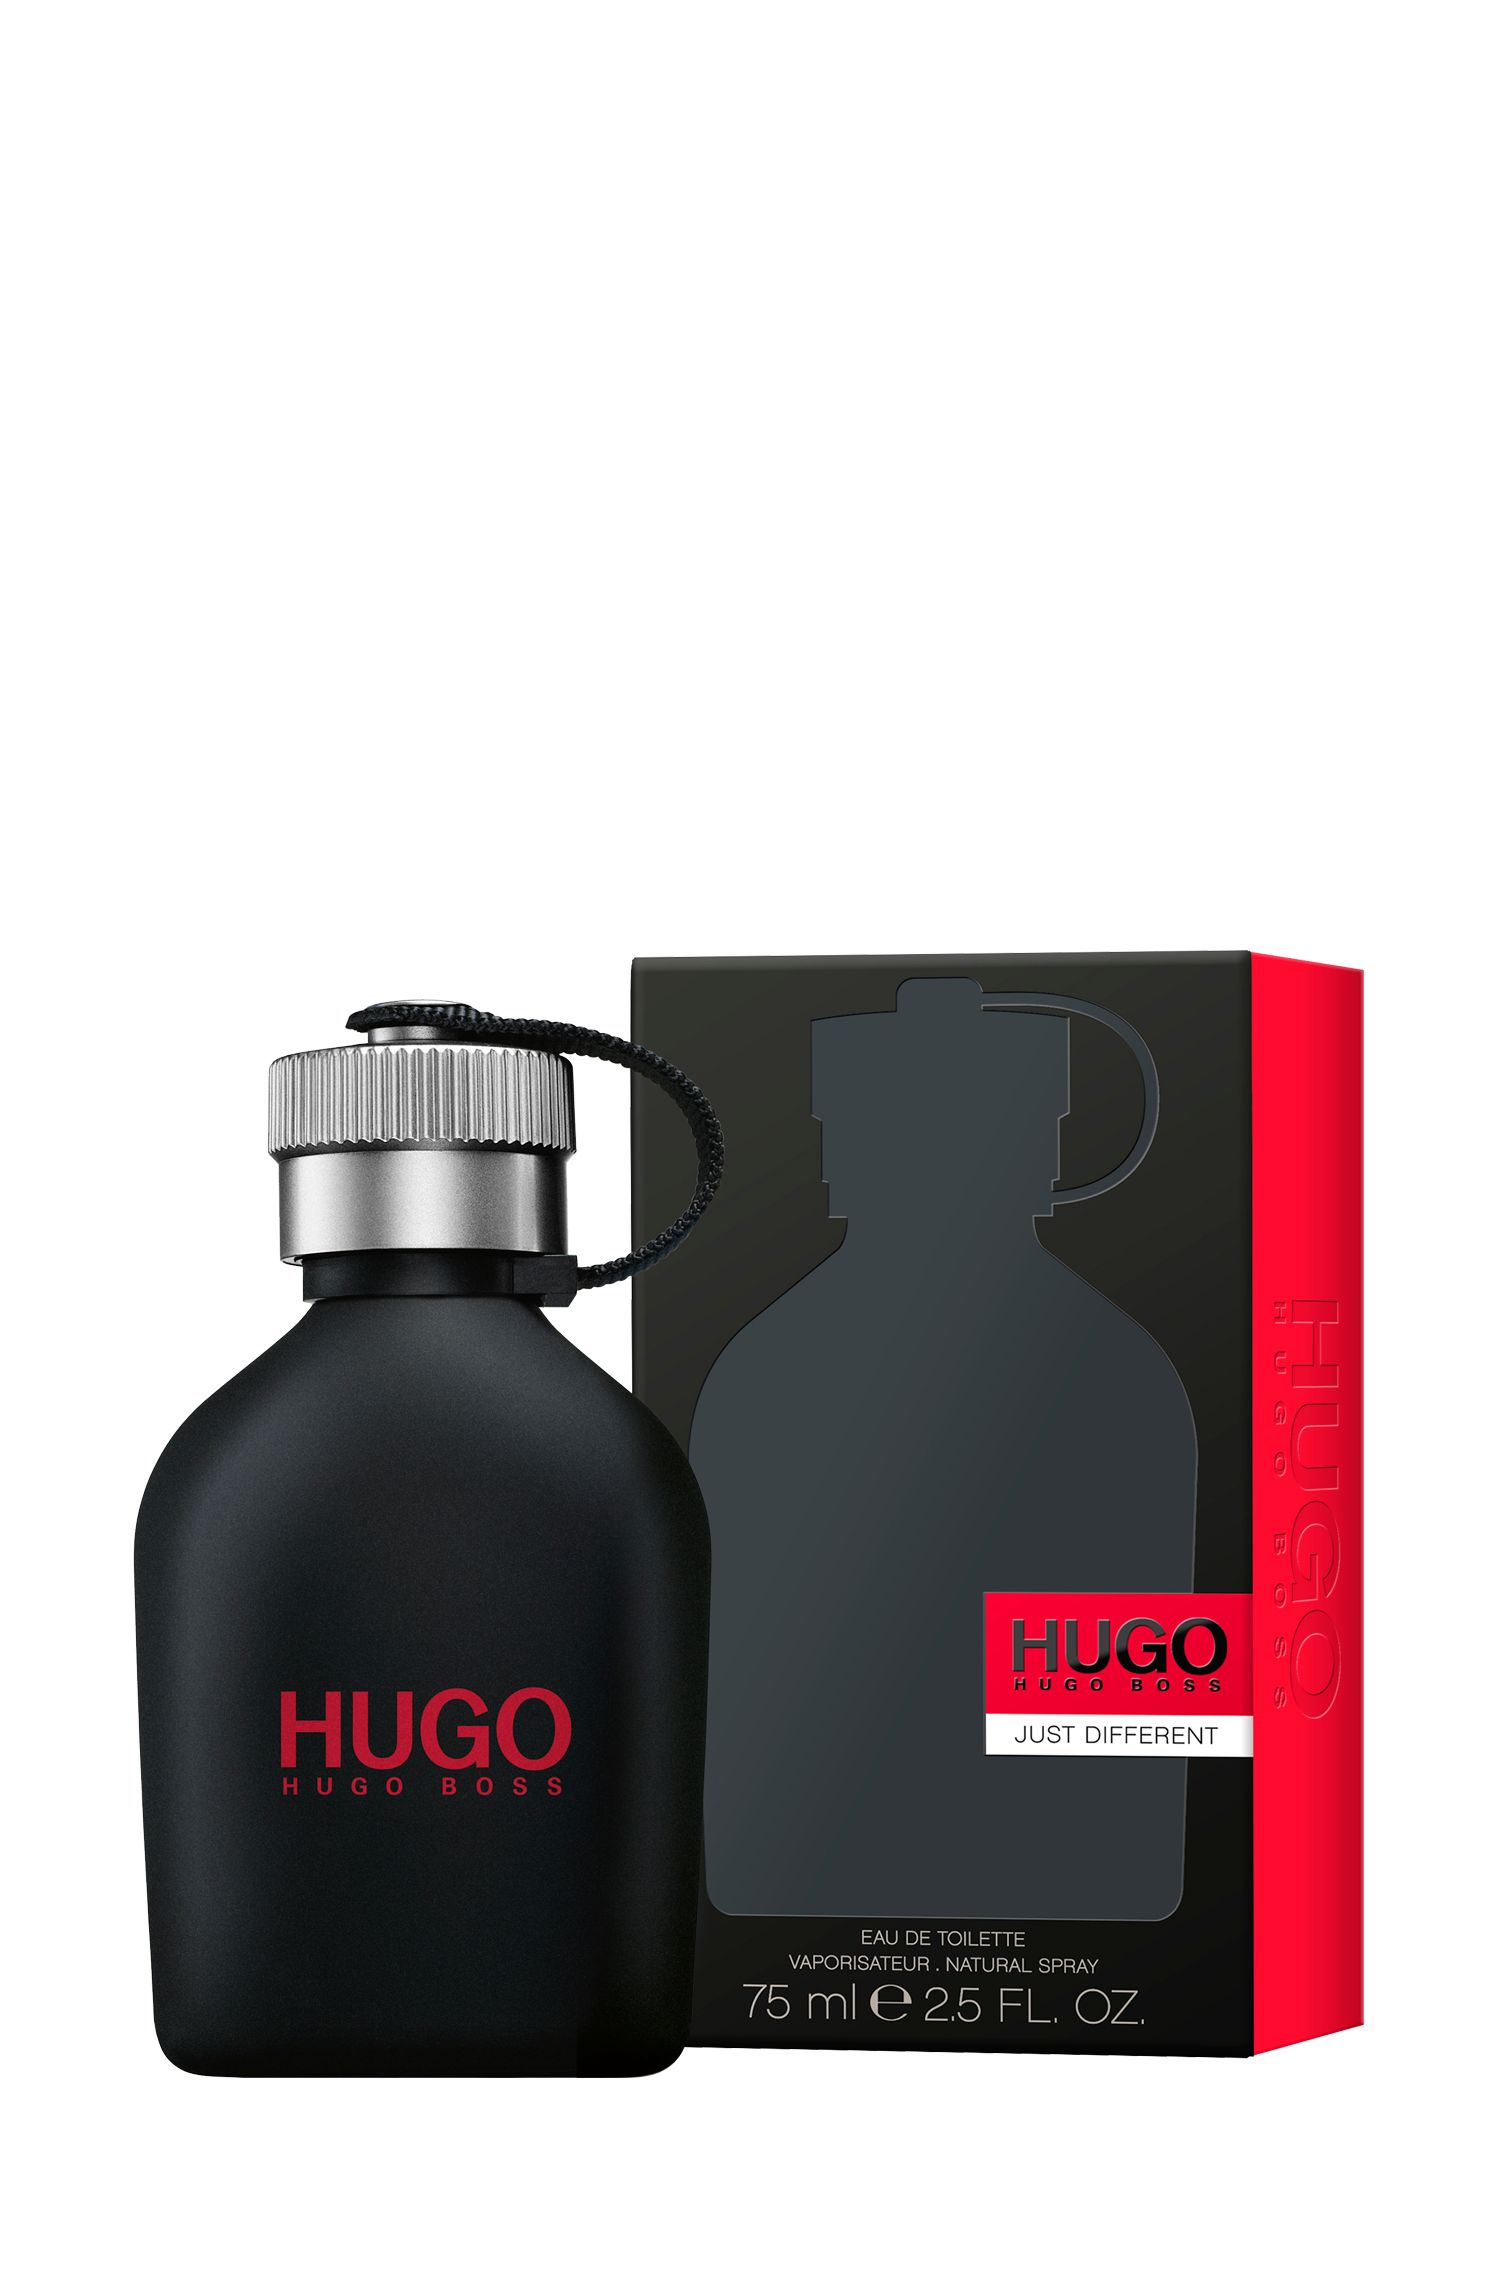 Eau de toilette HUGO Just Different da 75 ml, Assorted-Pre-Pack